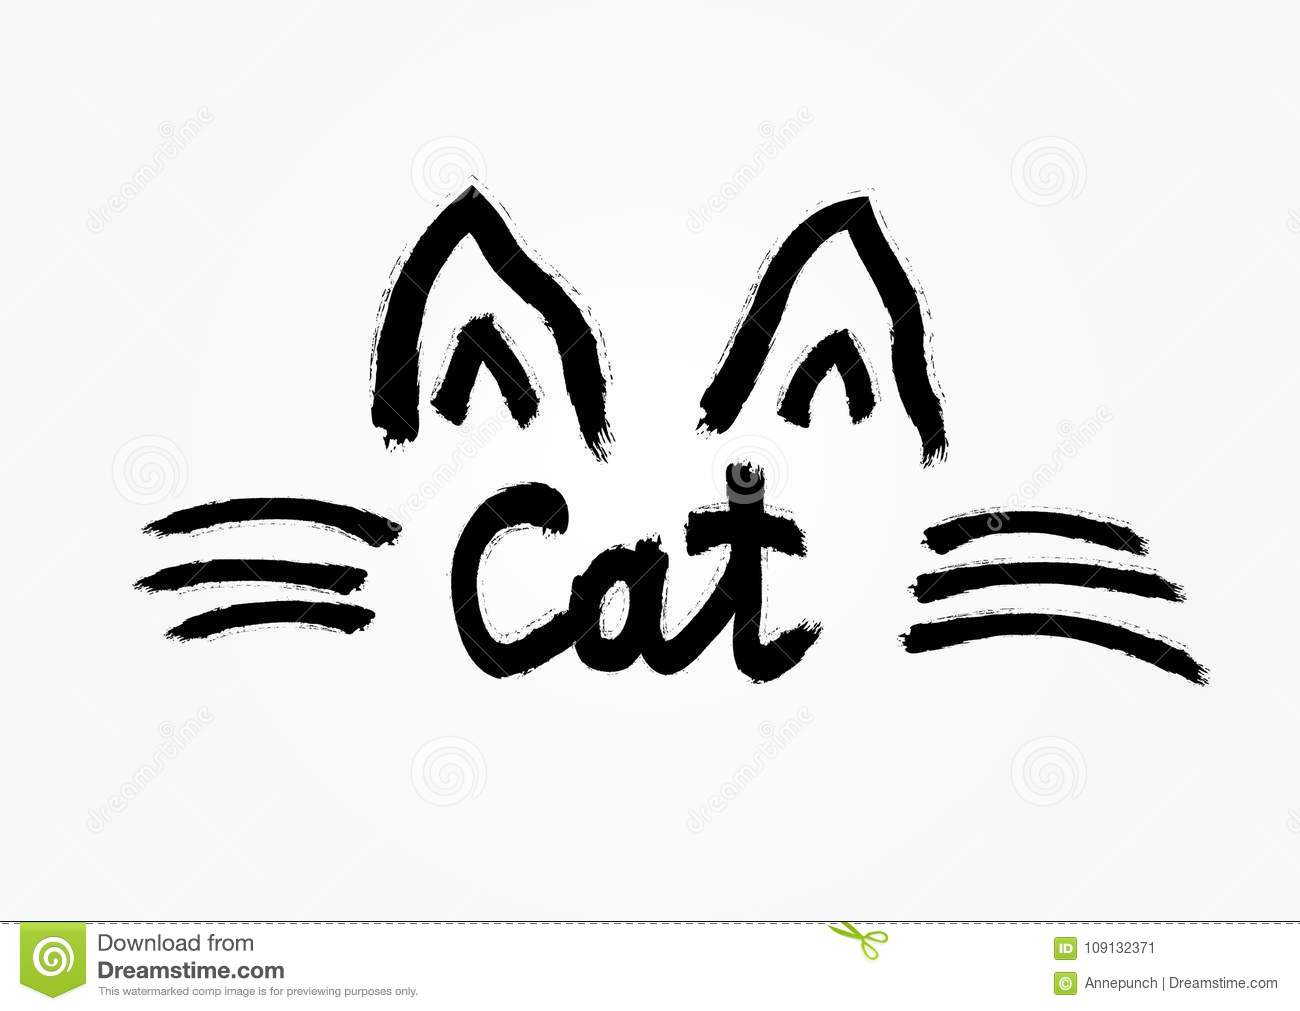 Outline of the cat`s ears and whiskers drawn by hand with rough brush. Handwritten text Cat.